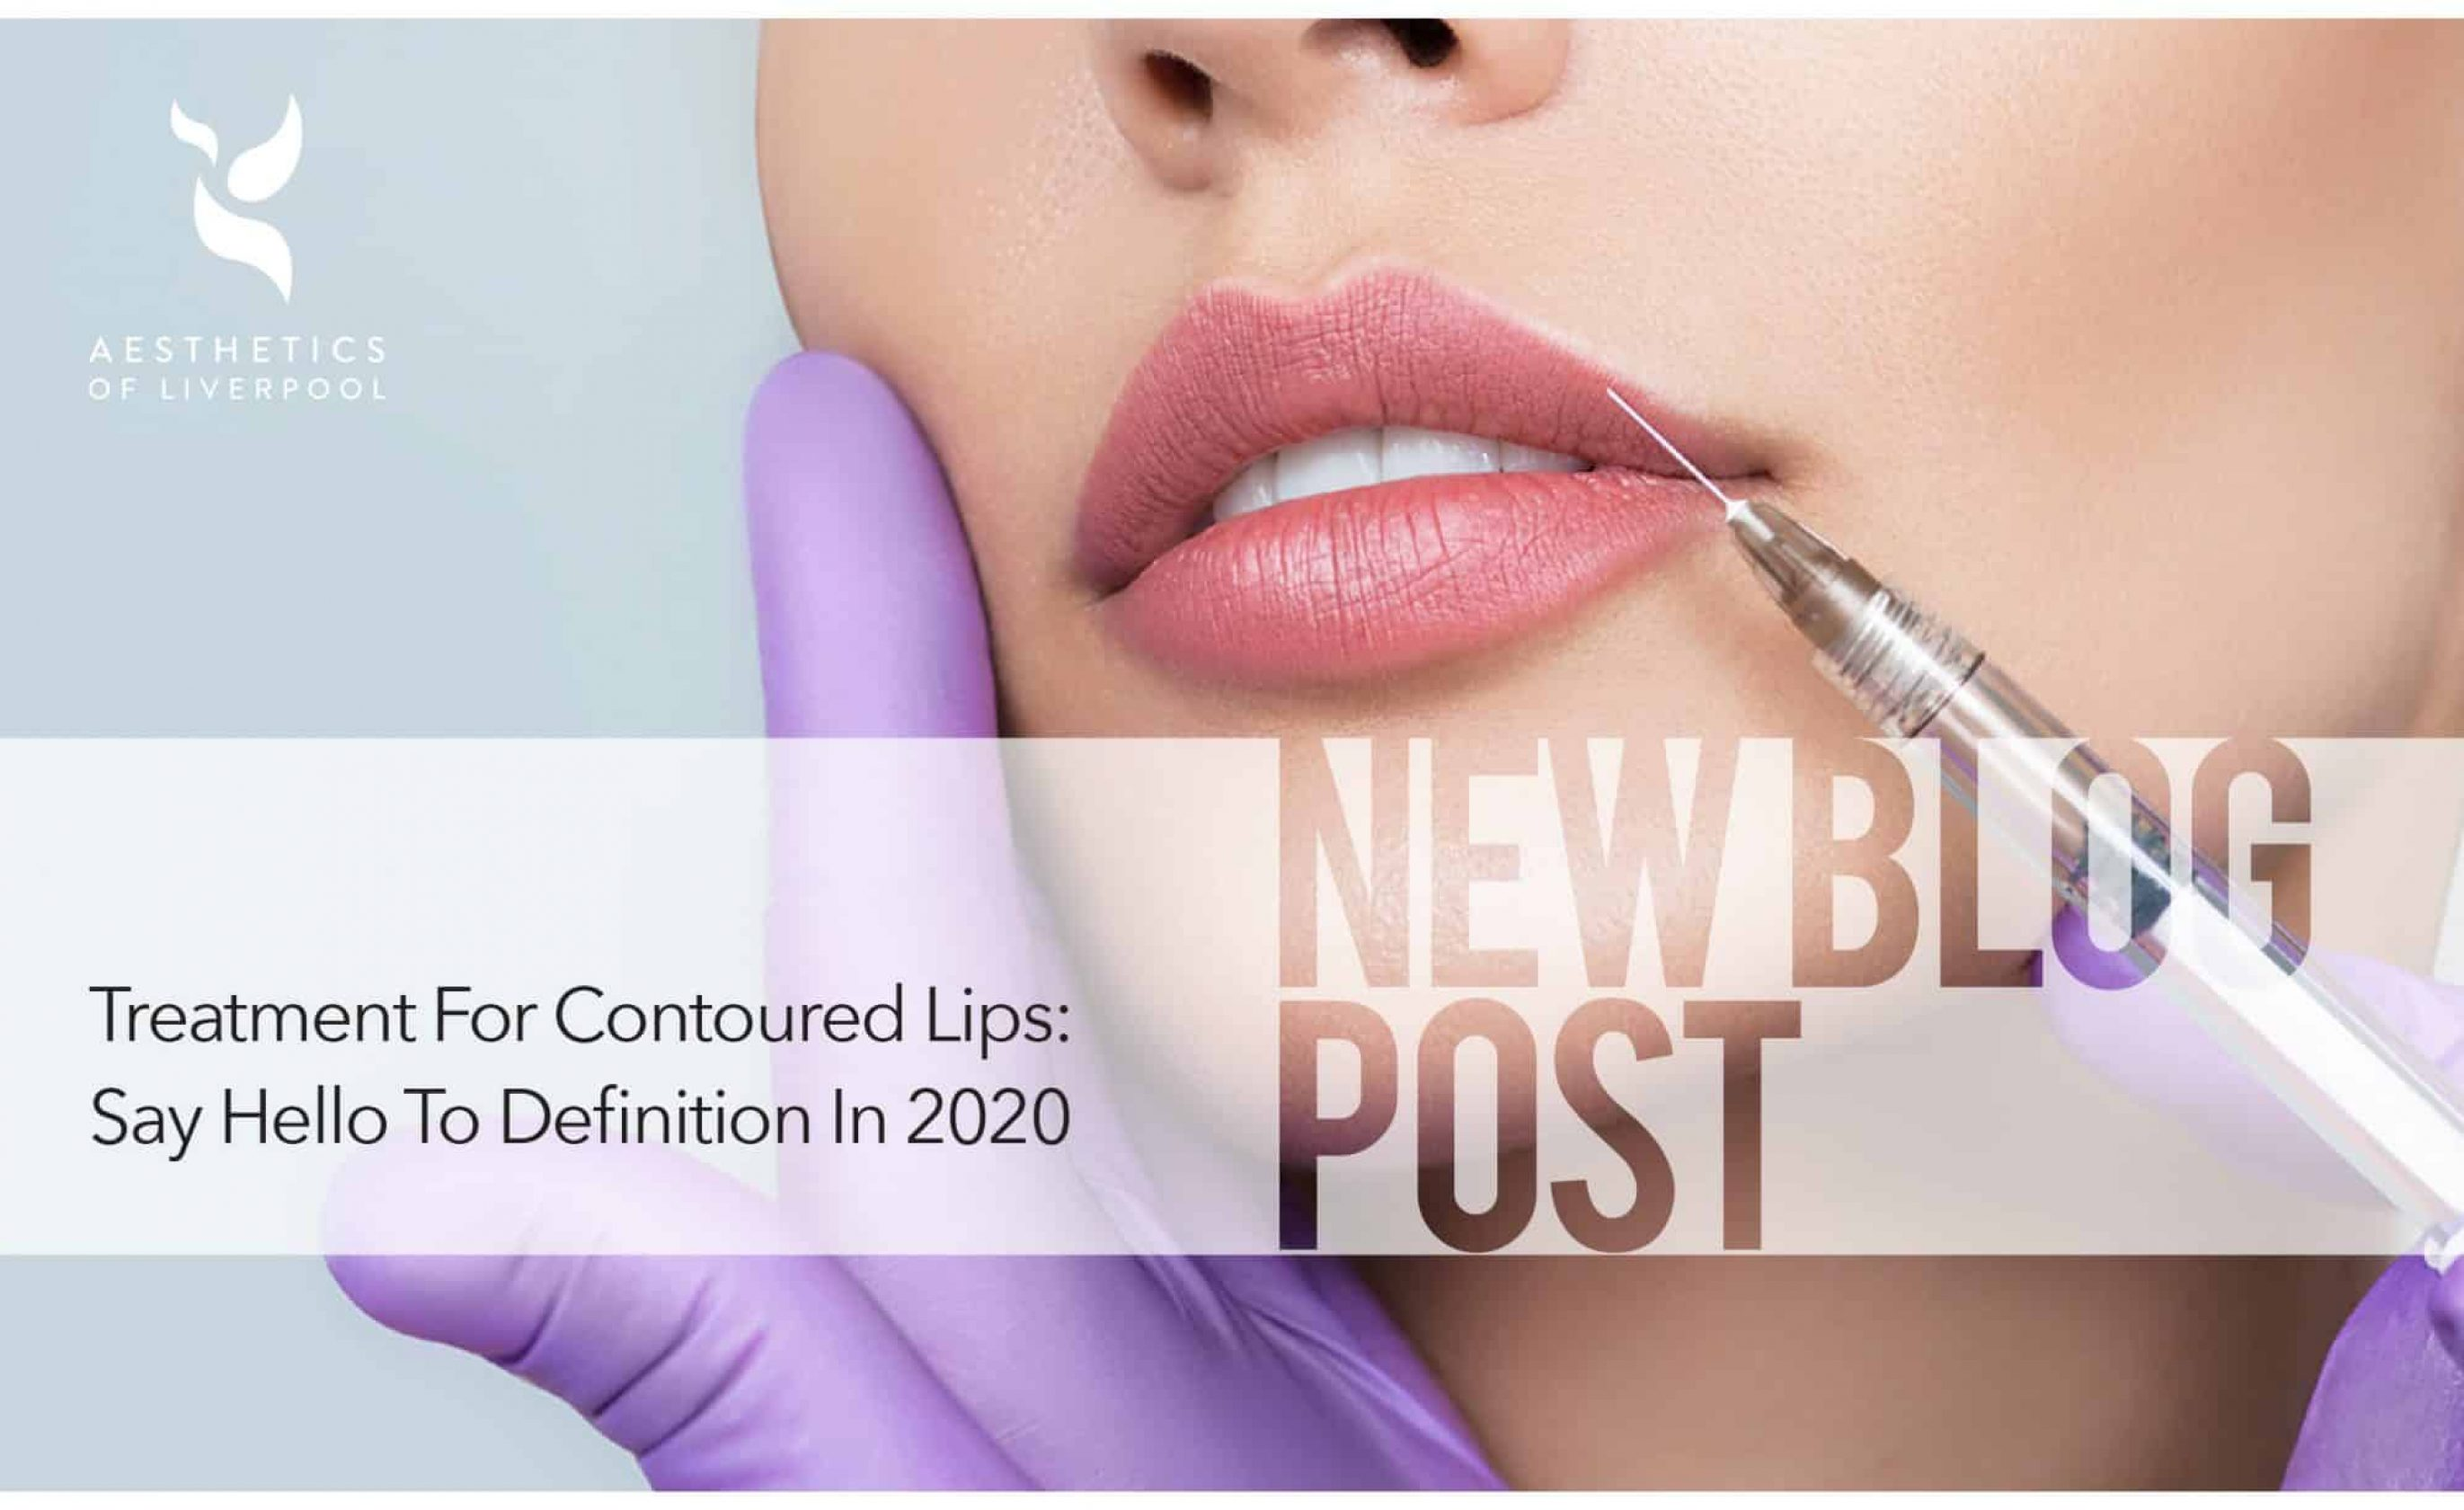 Contoured Lips: Say Hello To Definition In 2020